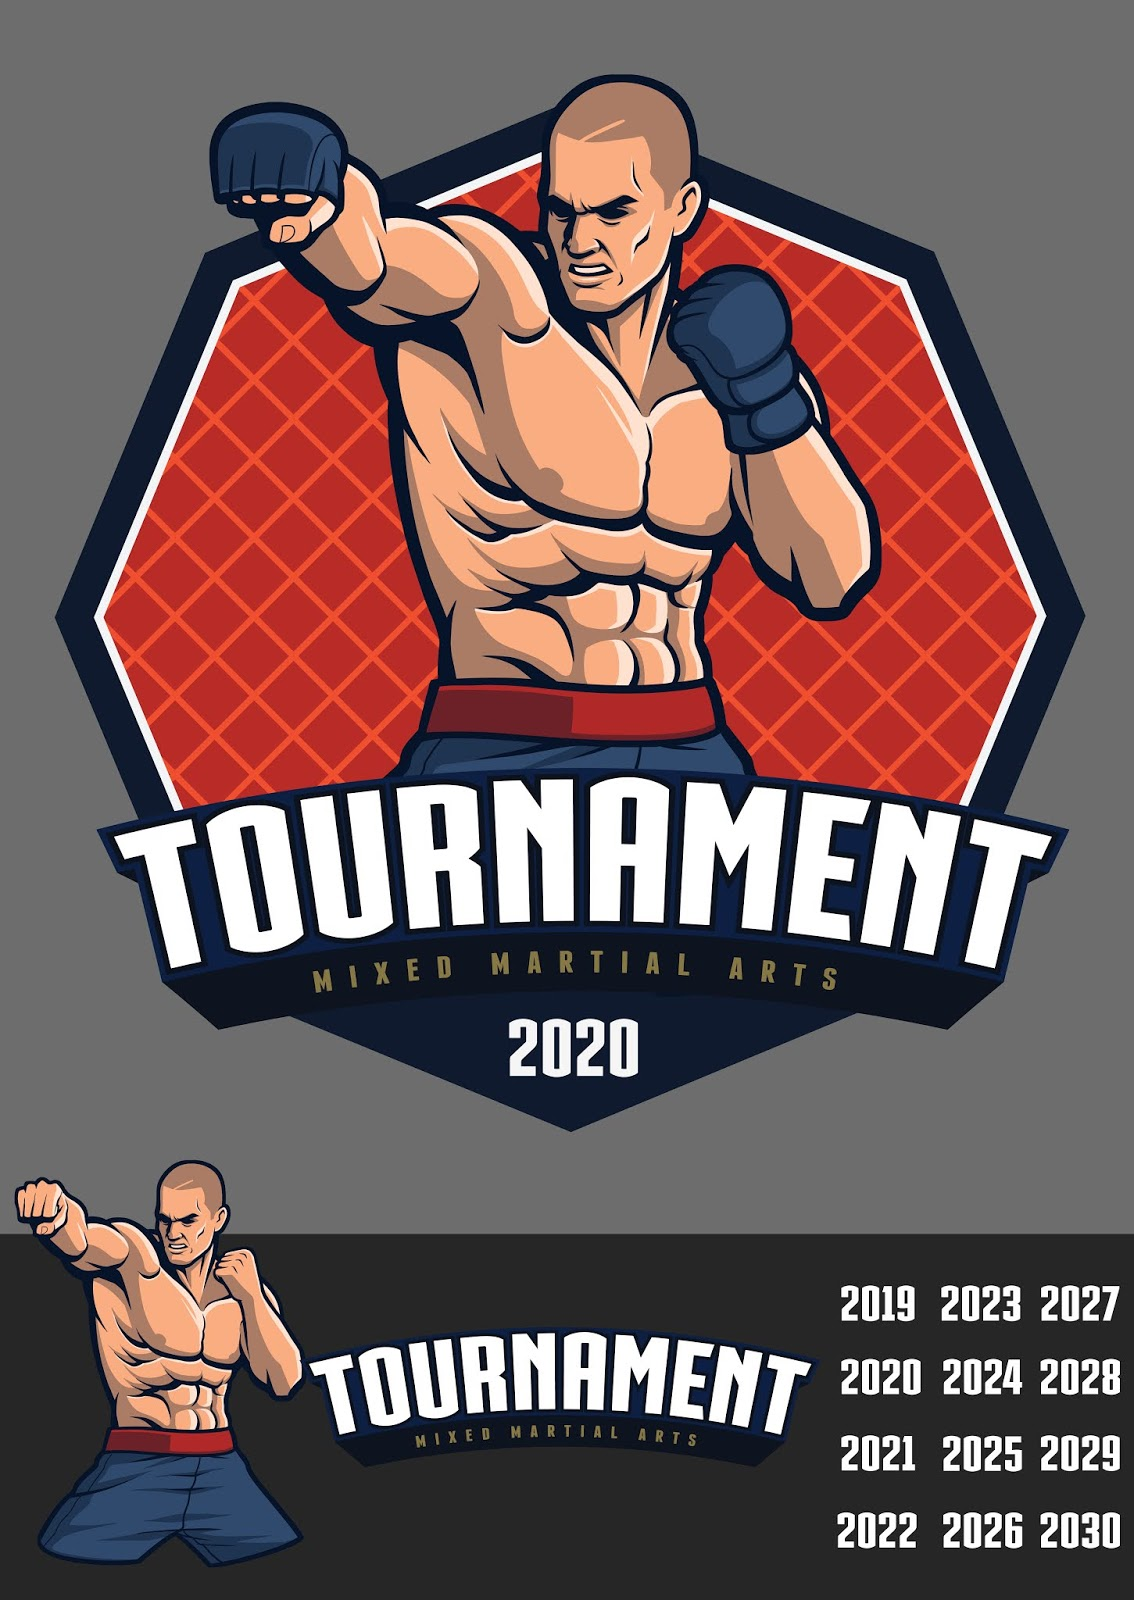 Mma Fighter Design Badge Logo Free Download Vector CDR, AI, EPS and PNG Formats